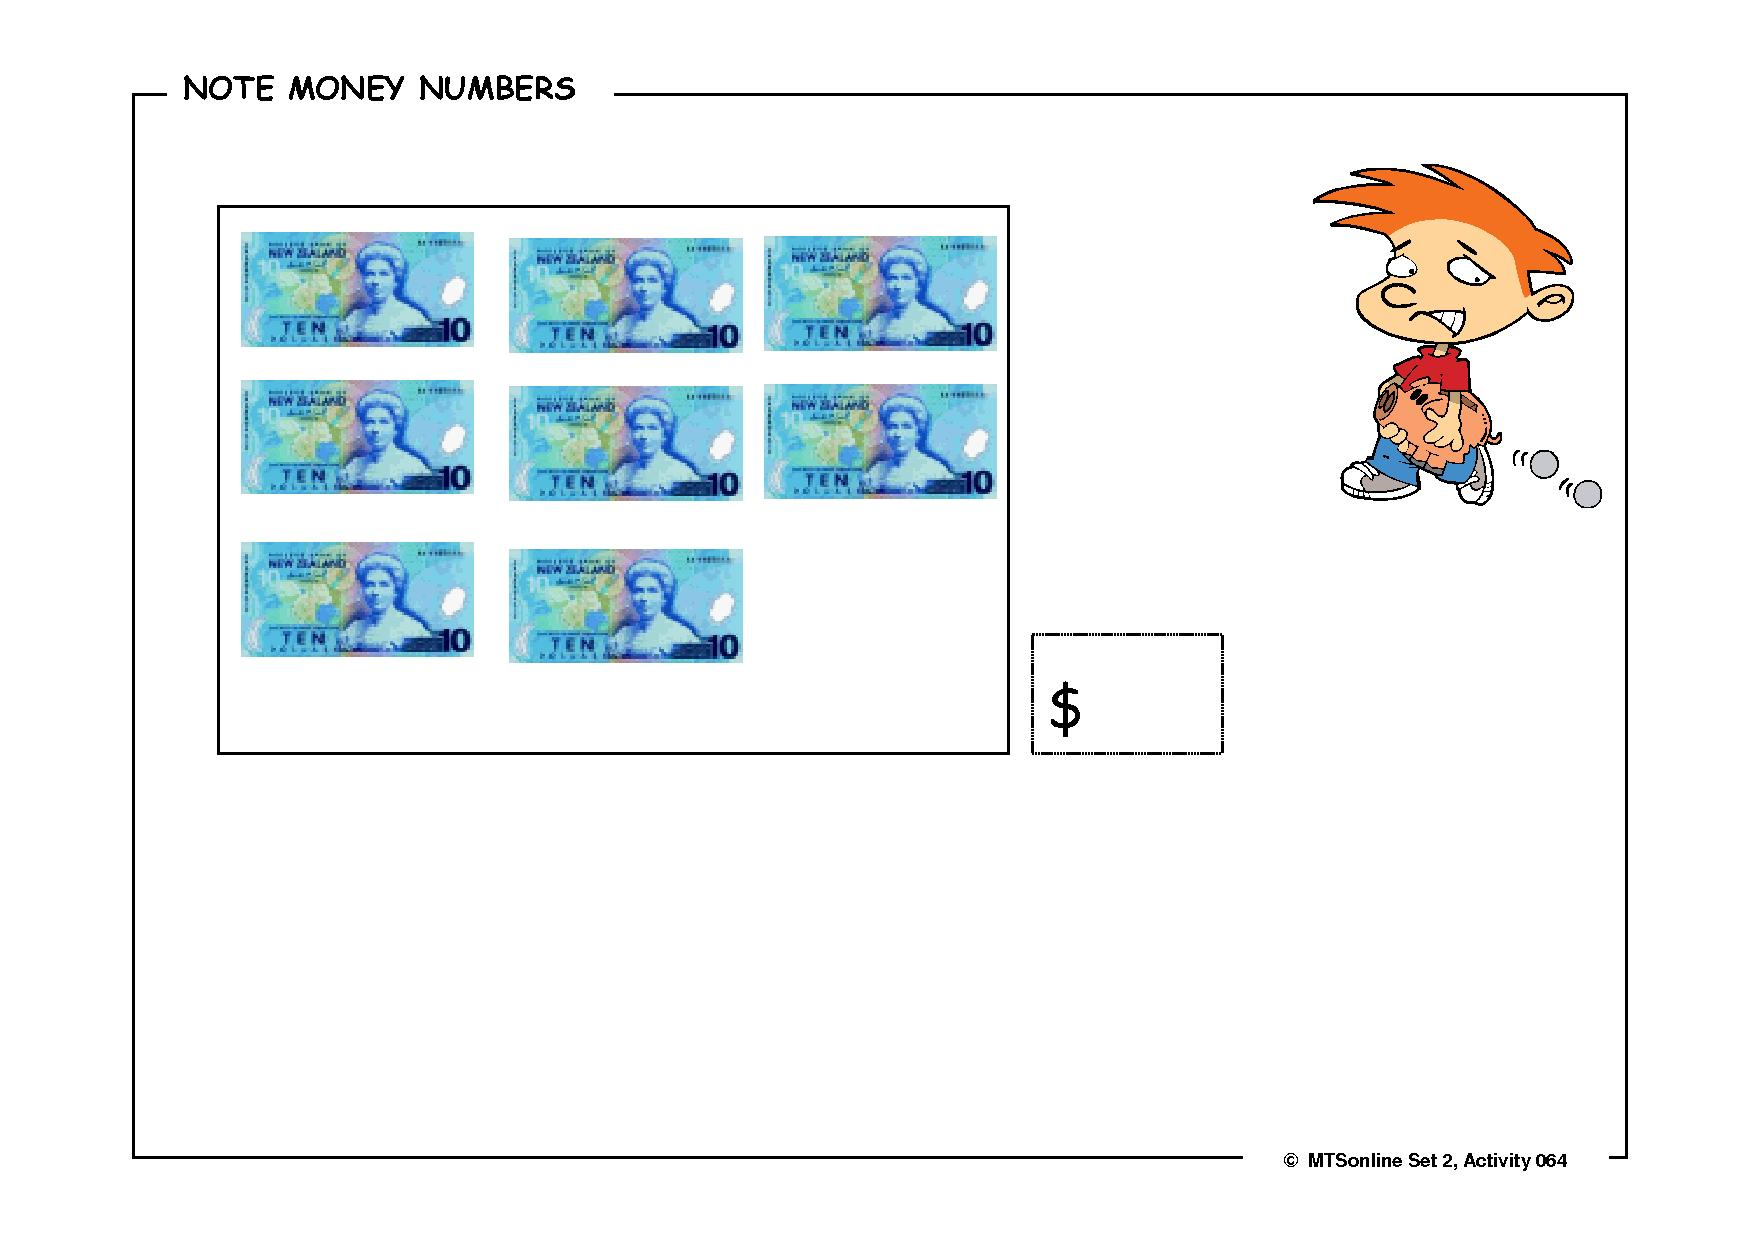 064note_money_numbers.nz0002